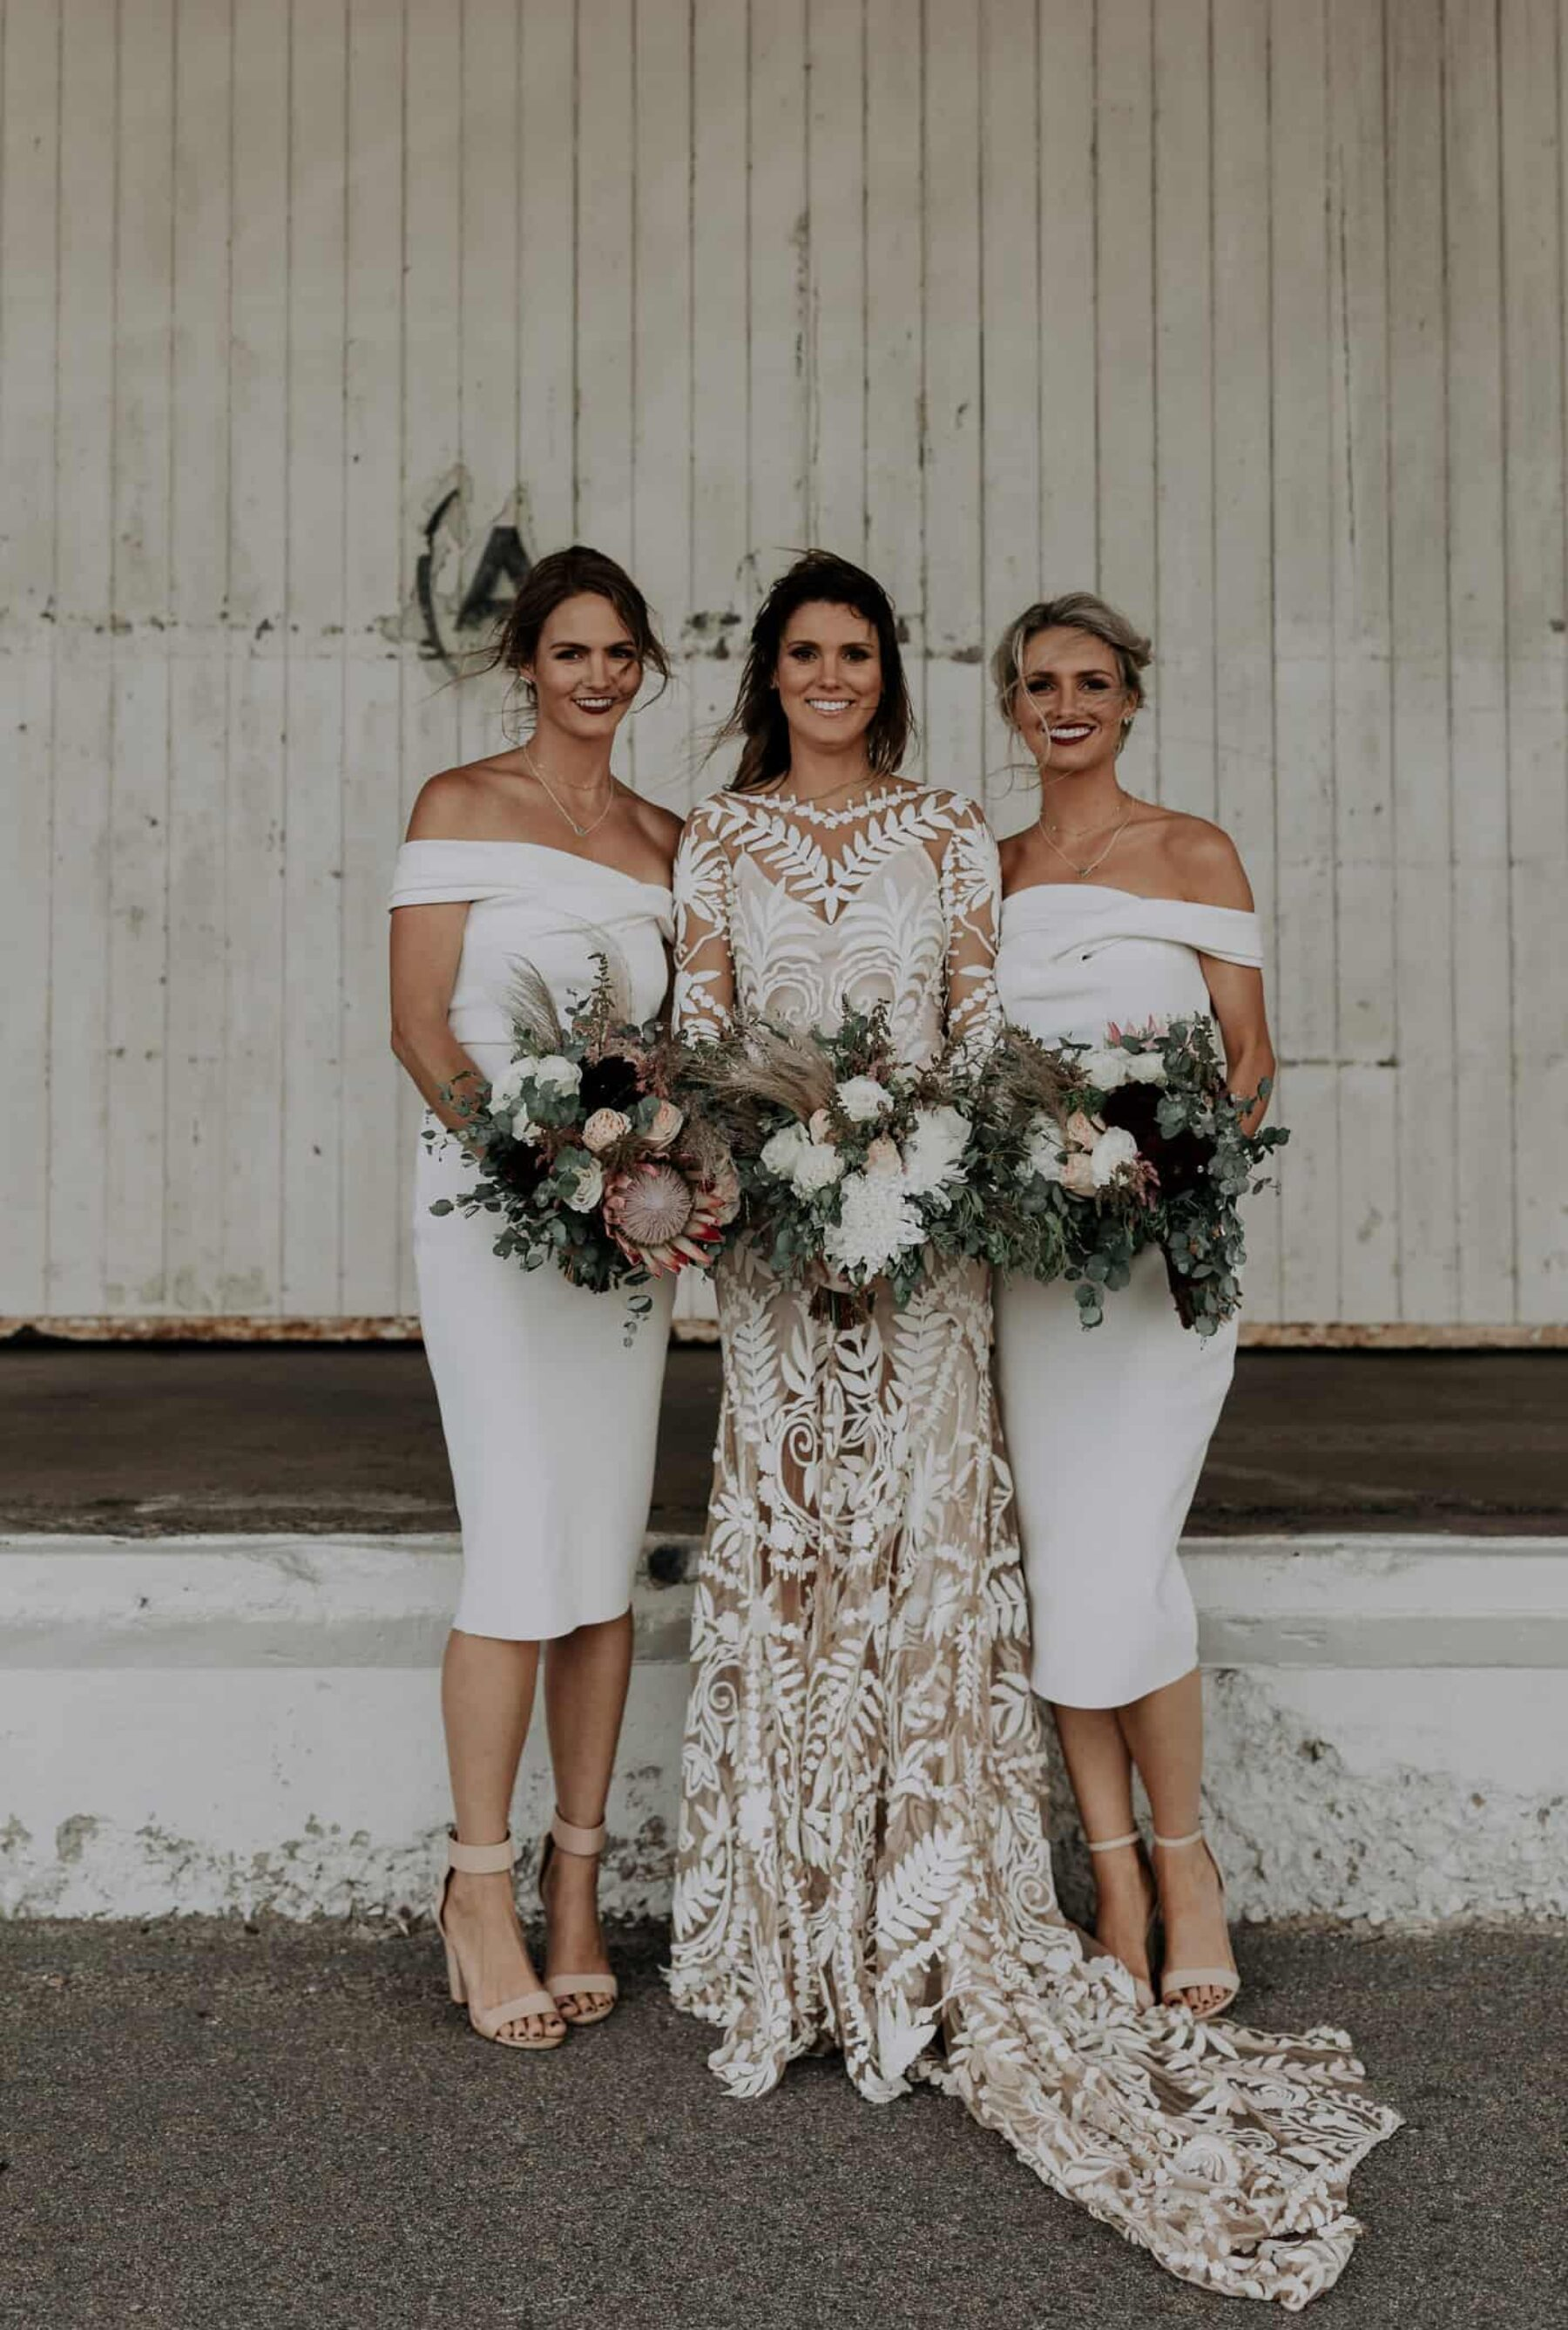 Fremantle wedding at Kidogo Arthouse - photography by Alexandra Cohen